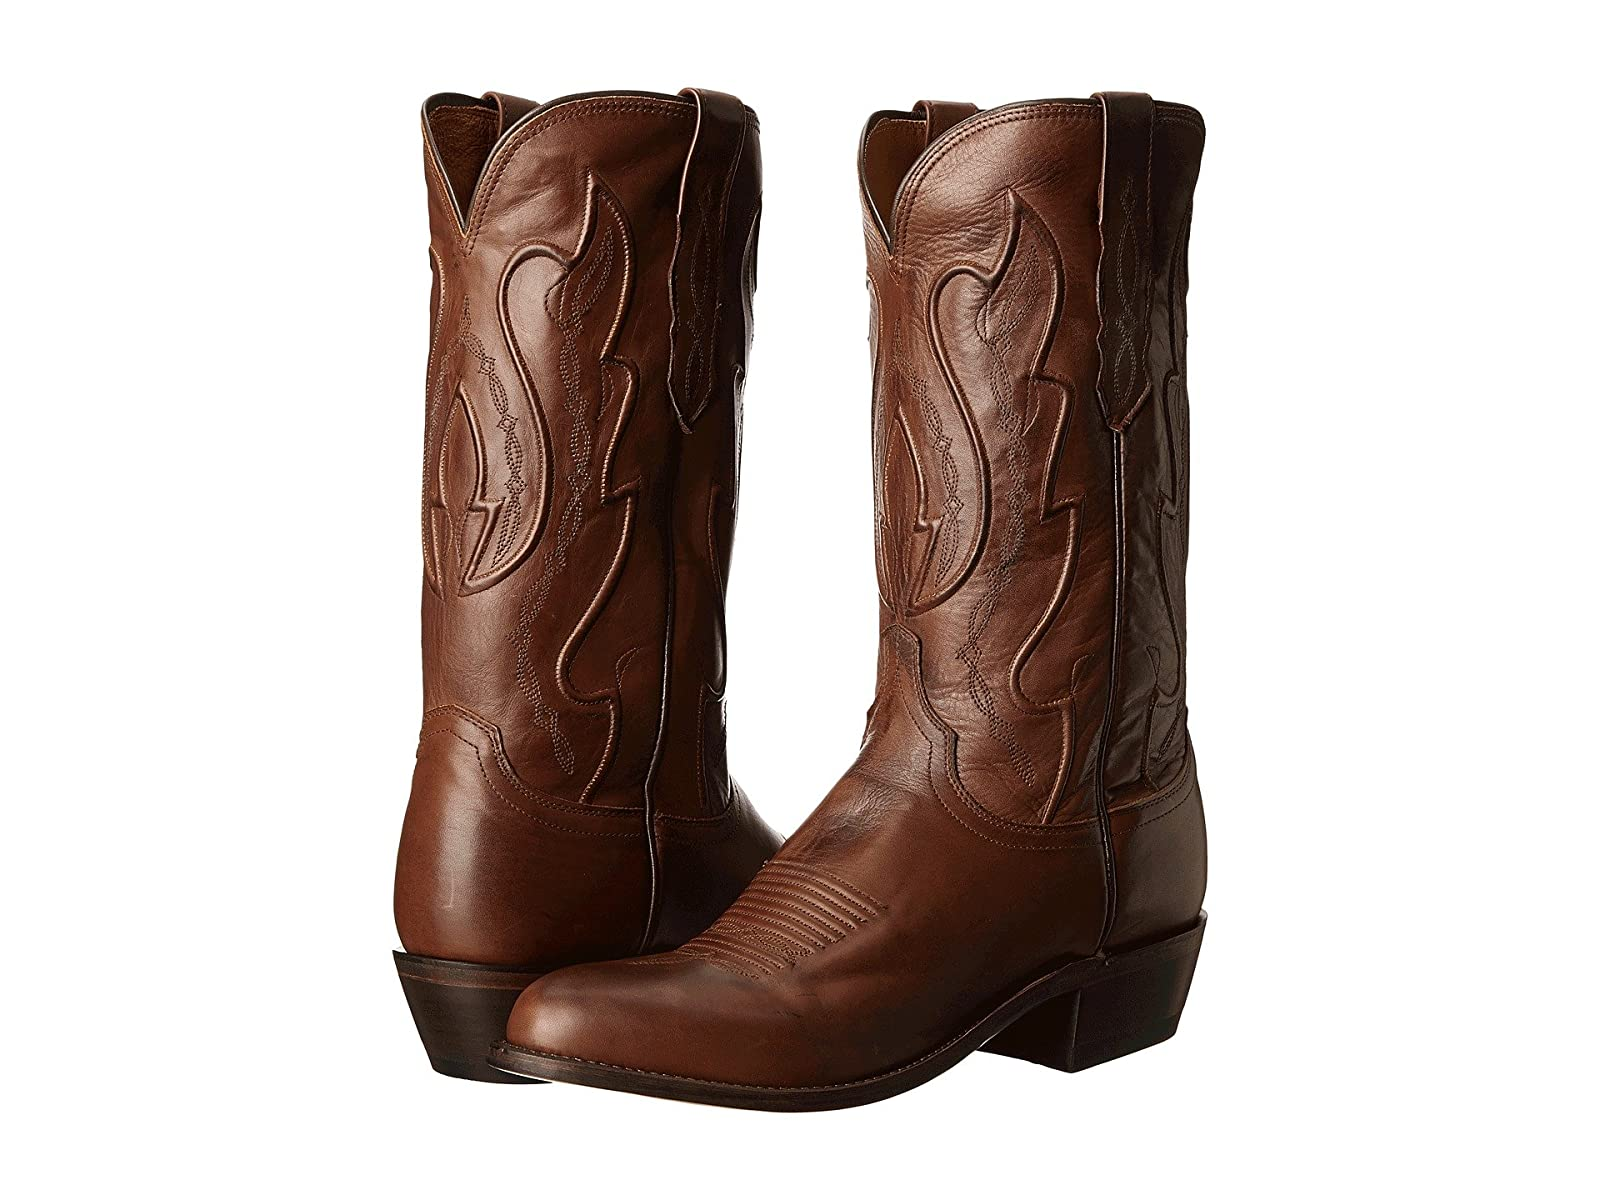 Lucchese M1004.R4Affordable and distinctive shoes